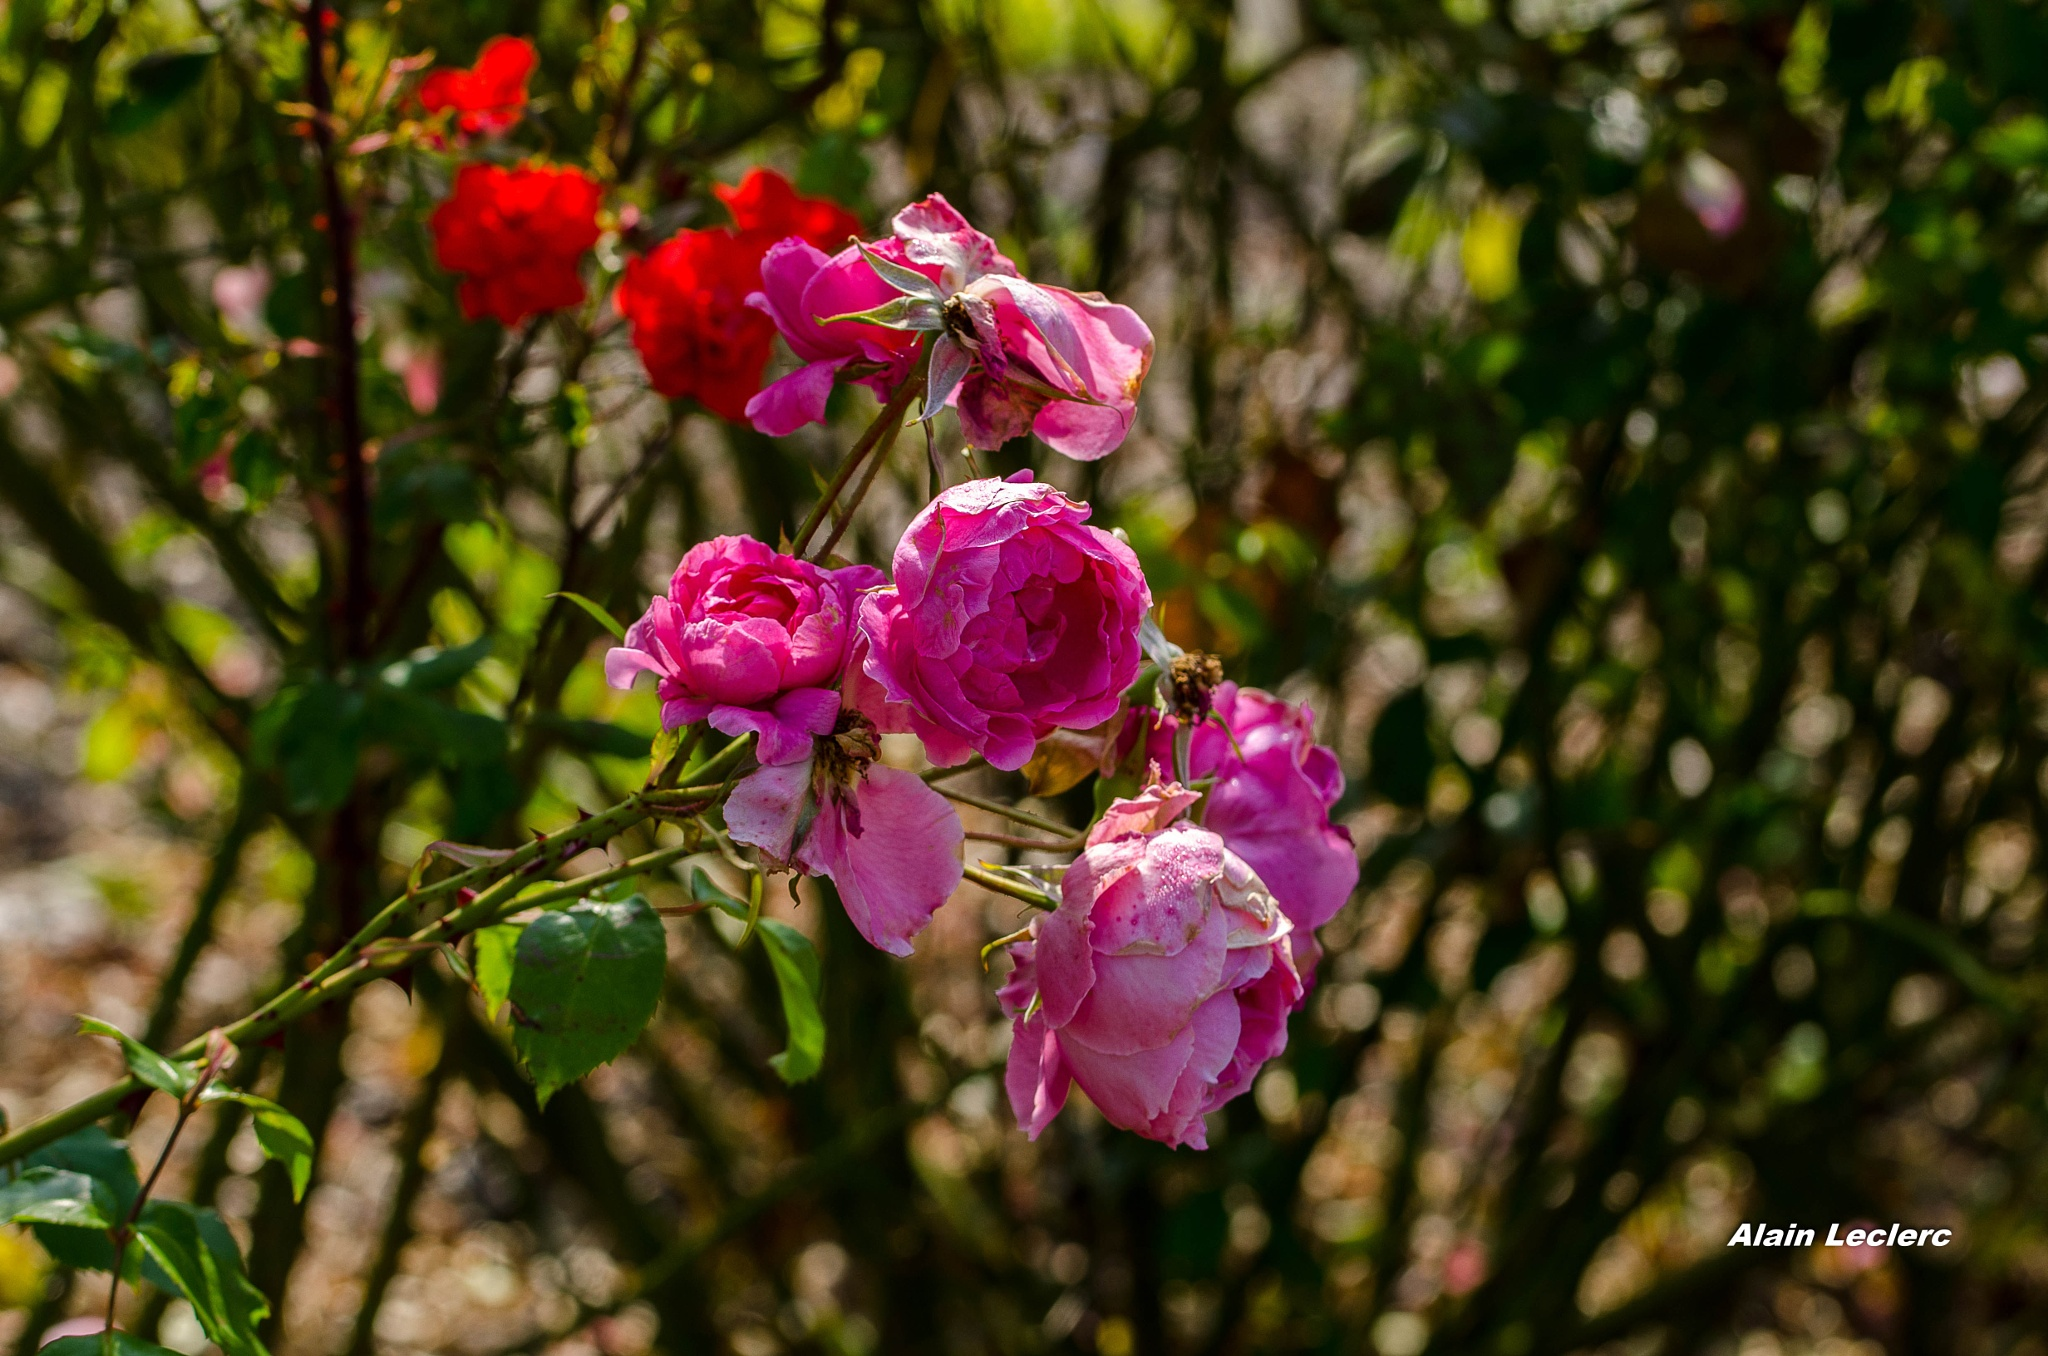 roses (5056) by leclercalainmail